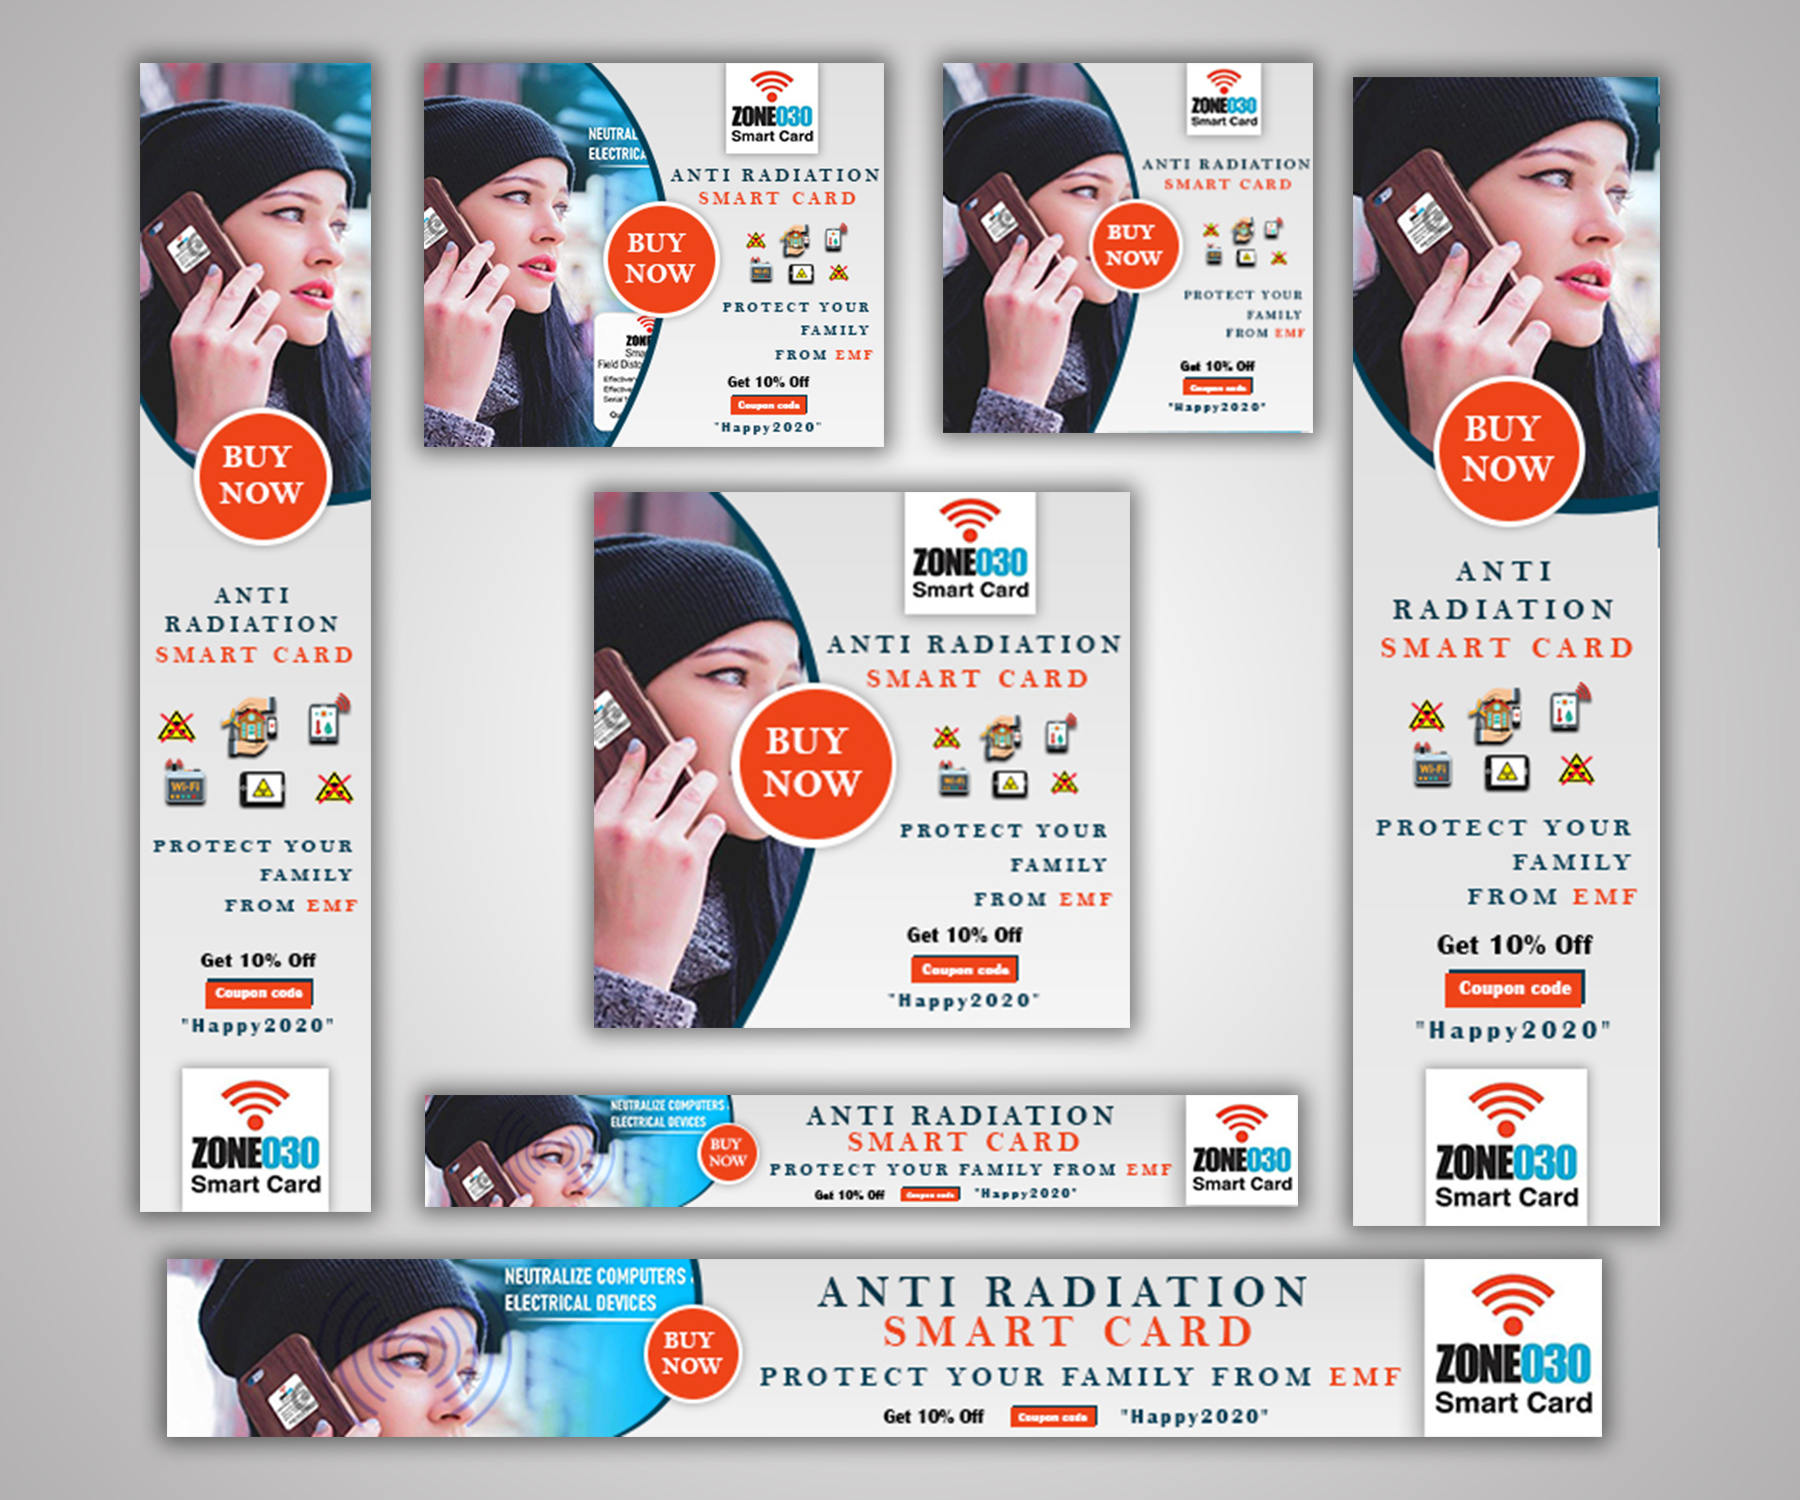 I will design attractive banner ads for google ads